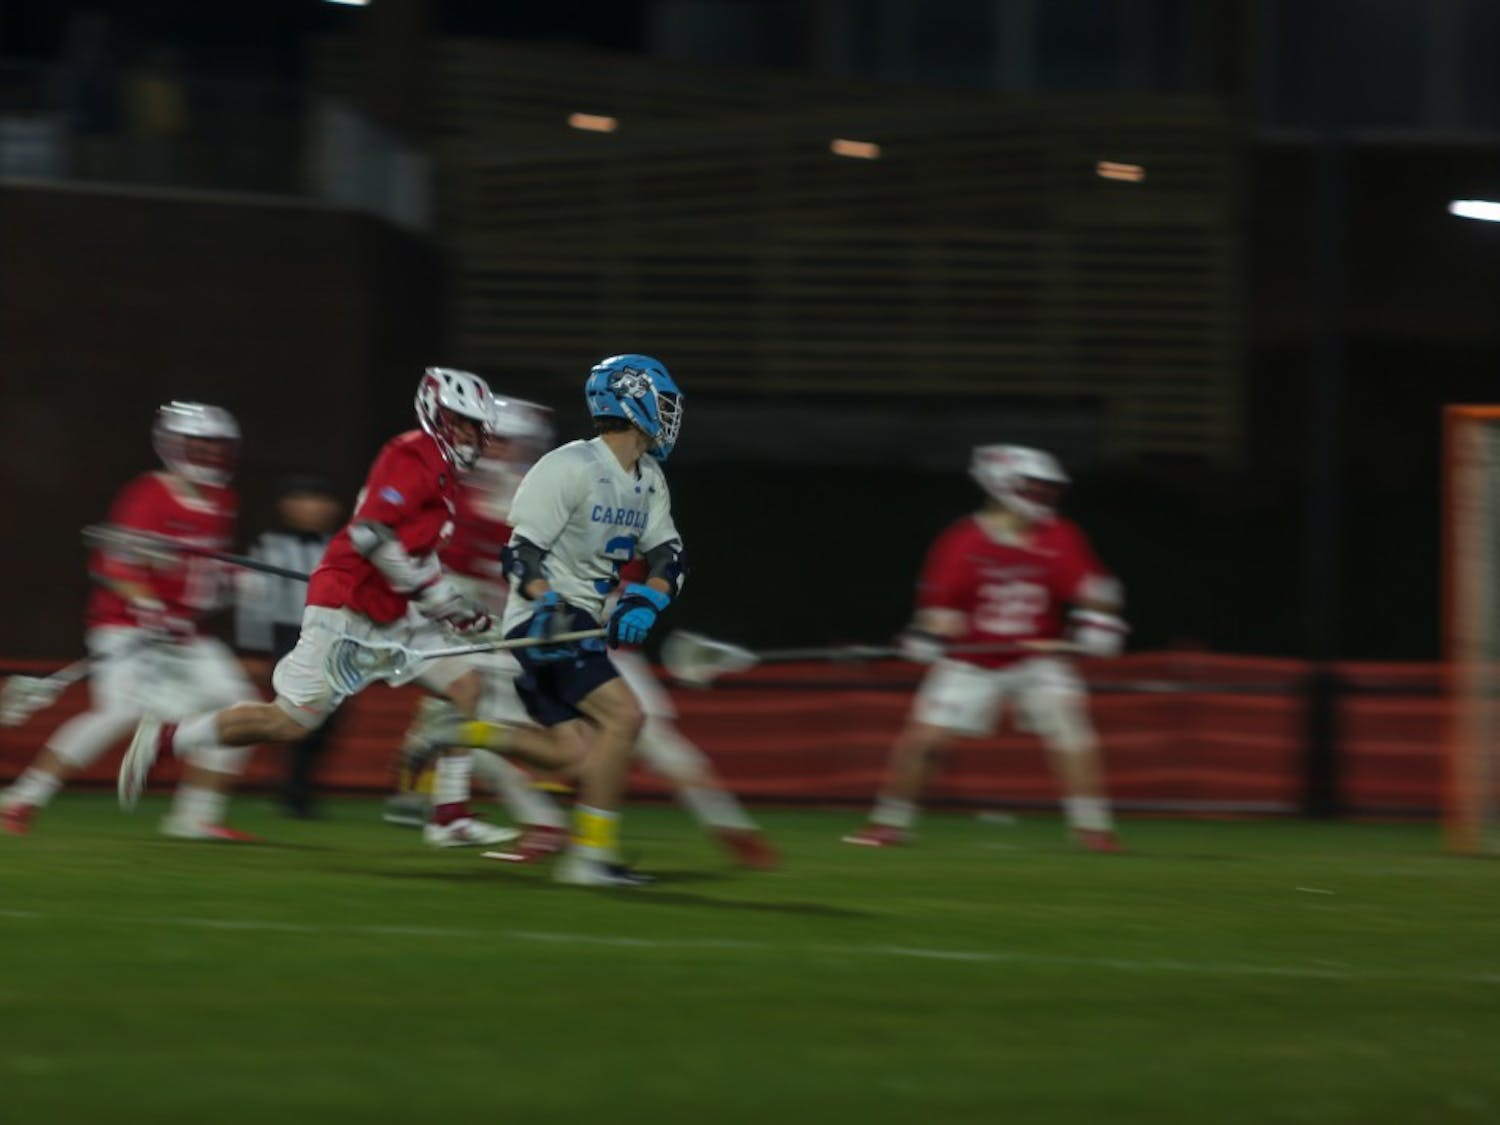 William Perry (UNC #3) scores a goal against Marist during the home lacrosse game on Friday, March 8 2019 in the UNC Lacrosse Stadium. Perry scored two goals during the game, helping the Tar Heels to a 17-5 victory over the Red Foxes